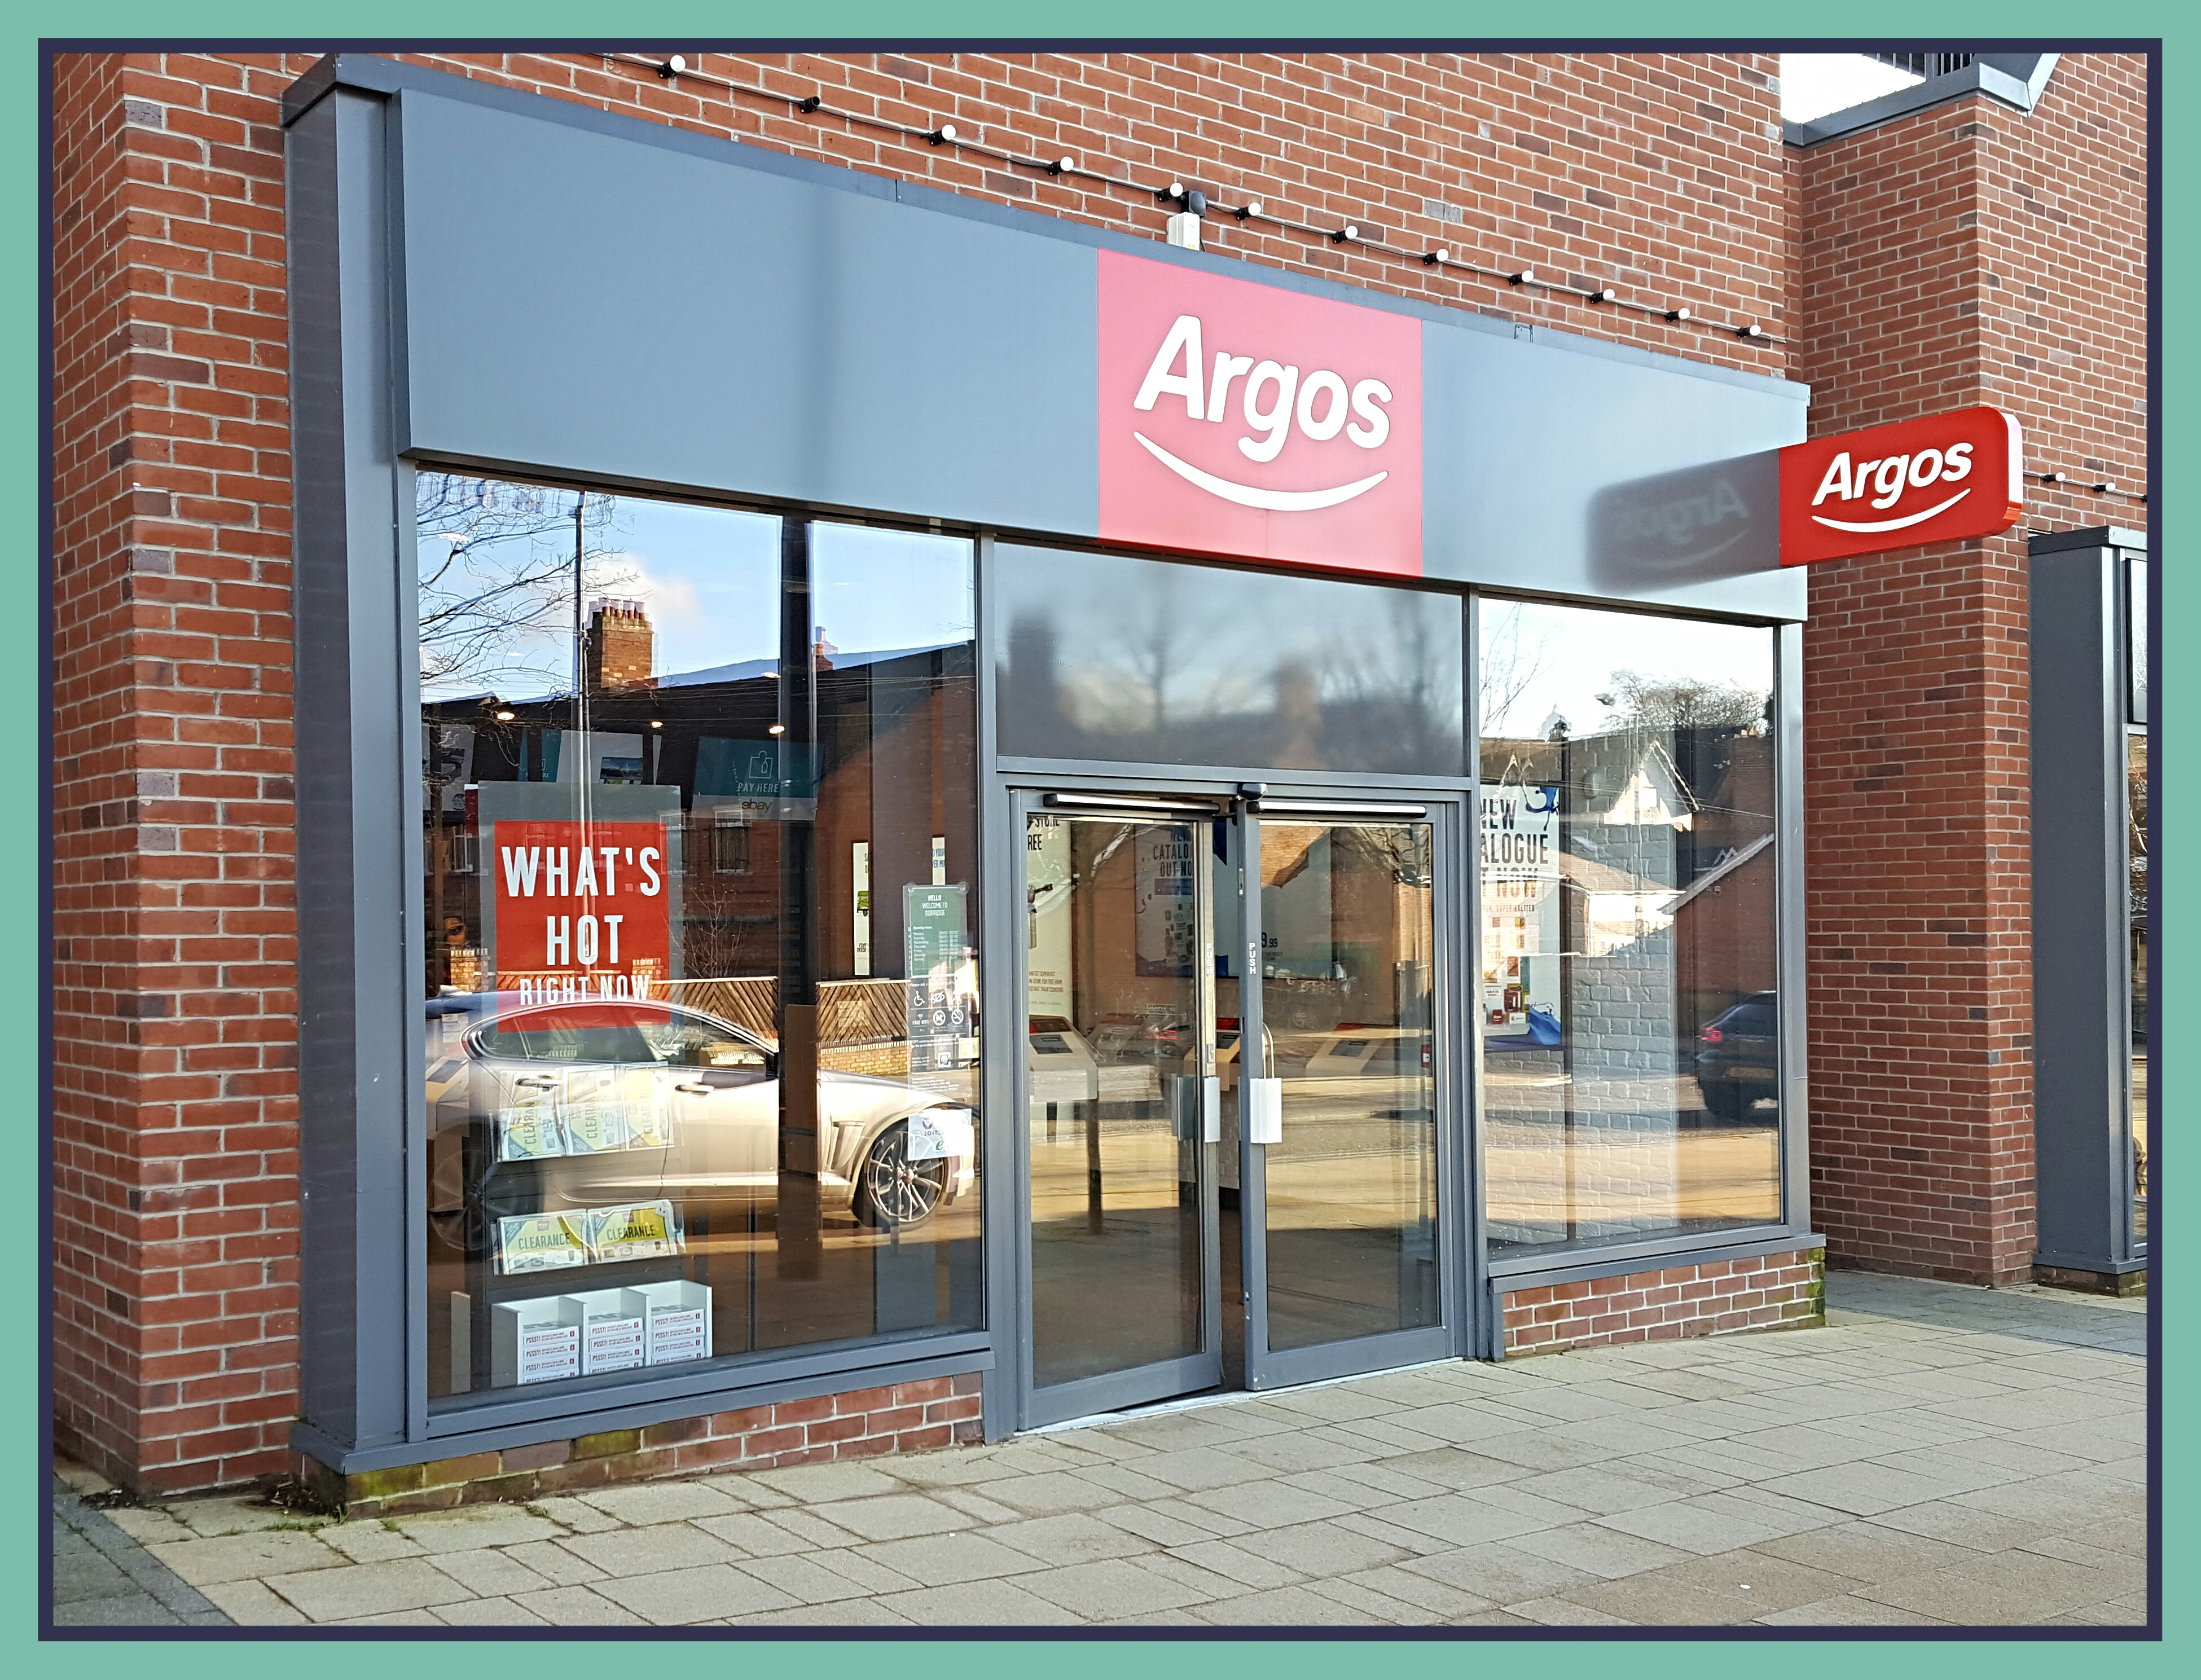 Argos Offering More Than 60 000 Products Online And In Store Sing Bentley Heath